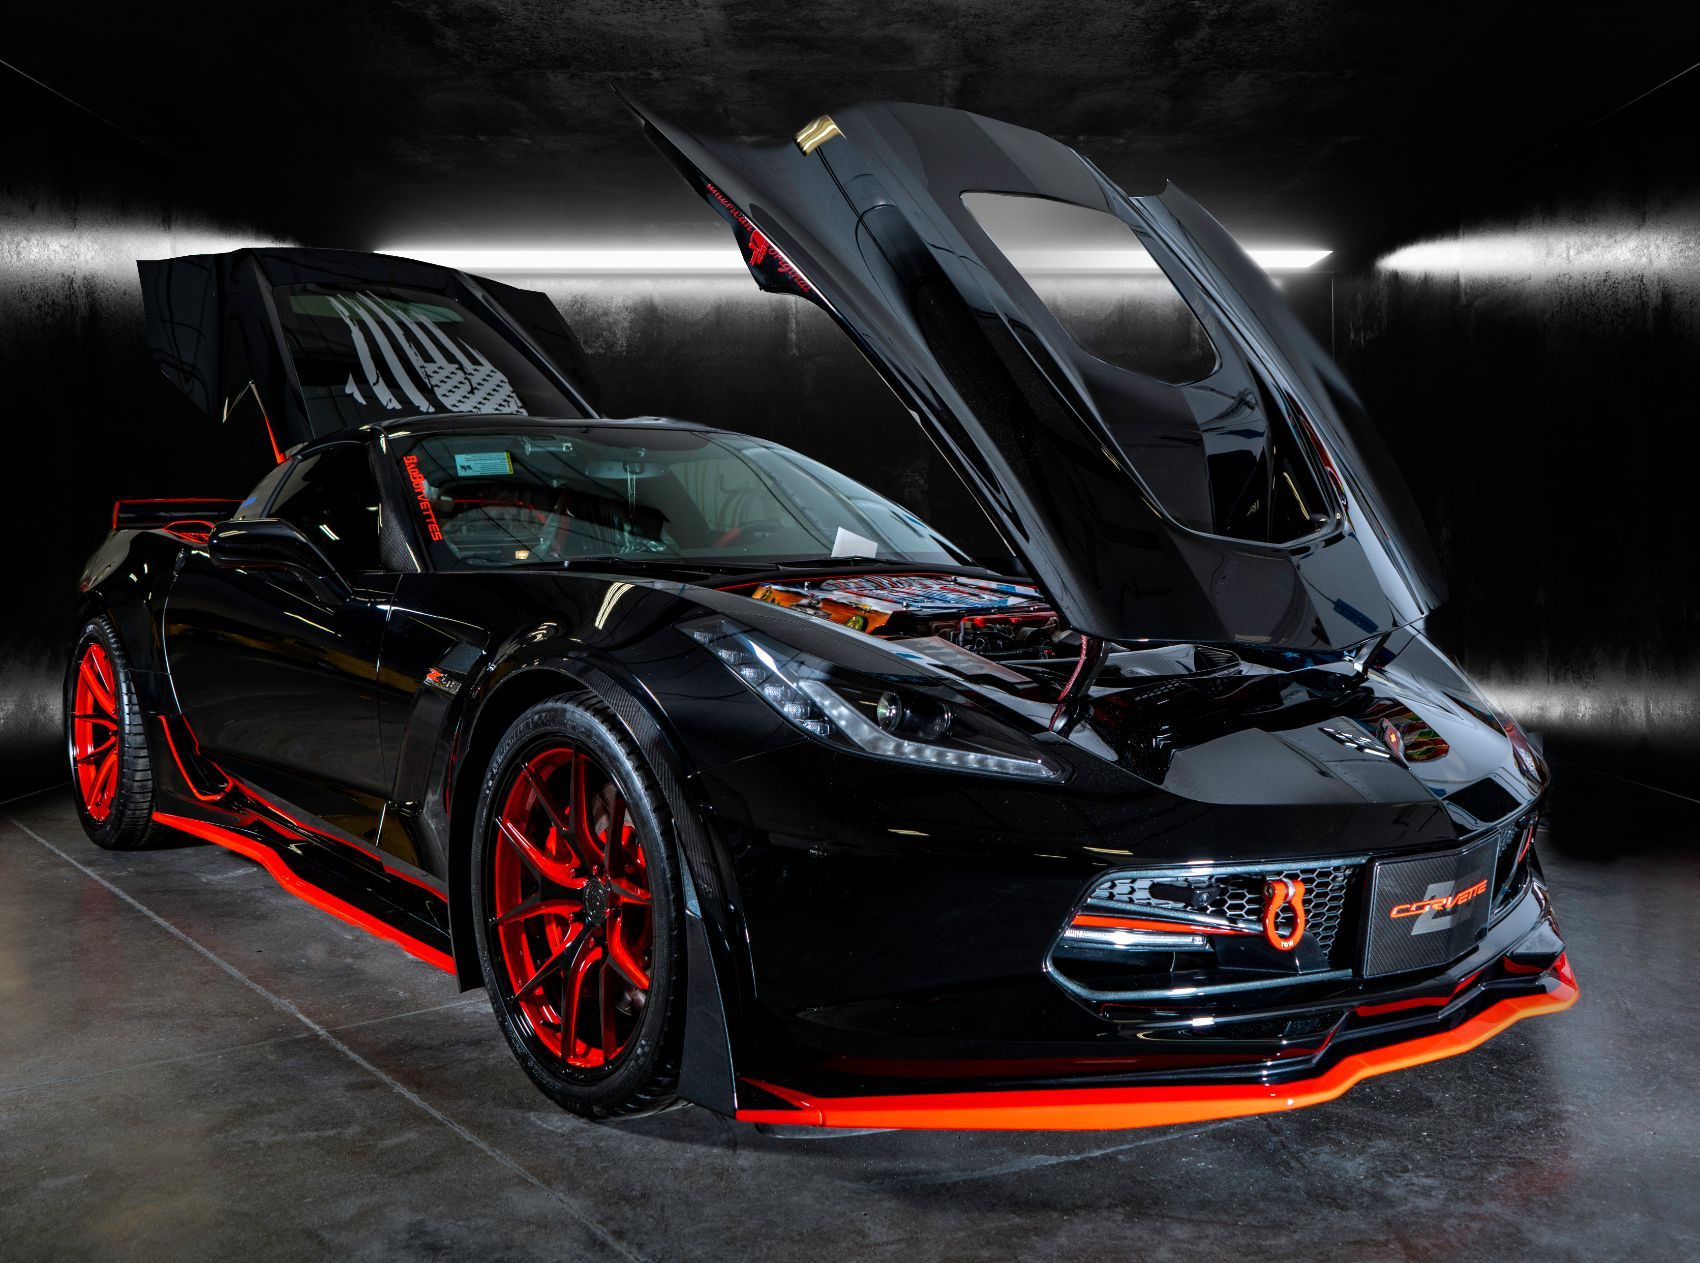 This Customized Chevy Corvette Z06 Pays Tribute to Veterans